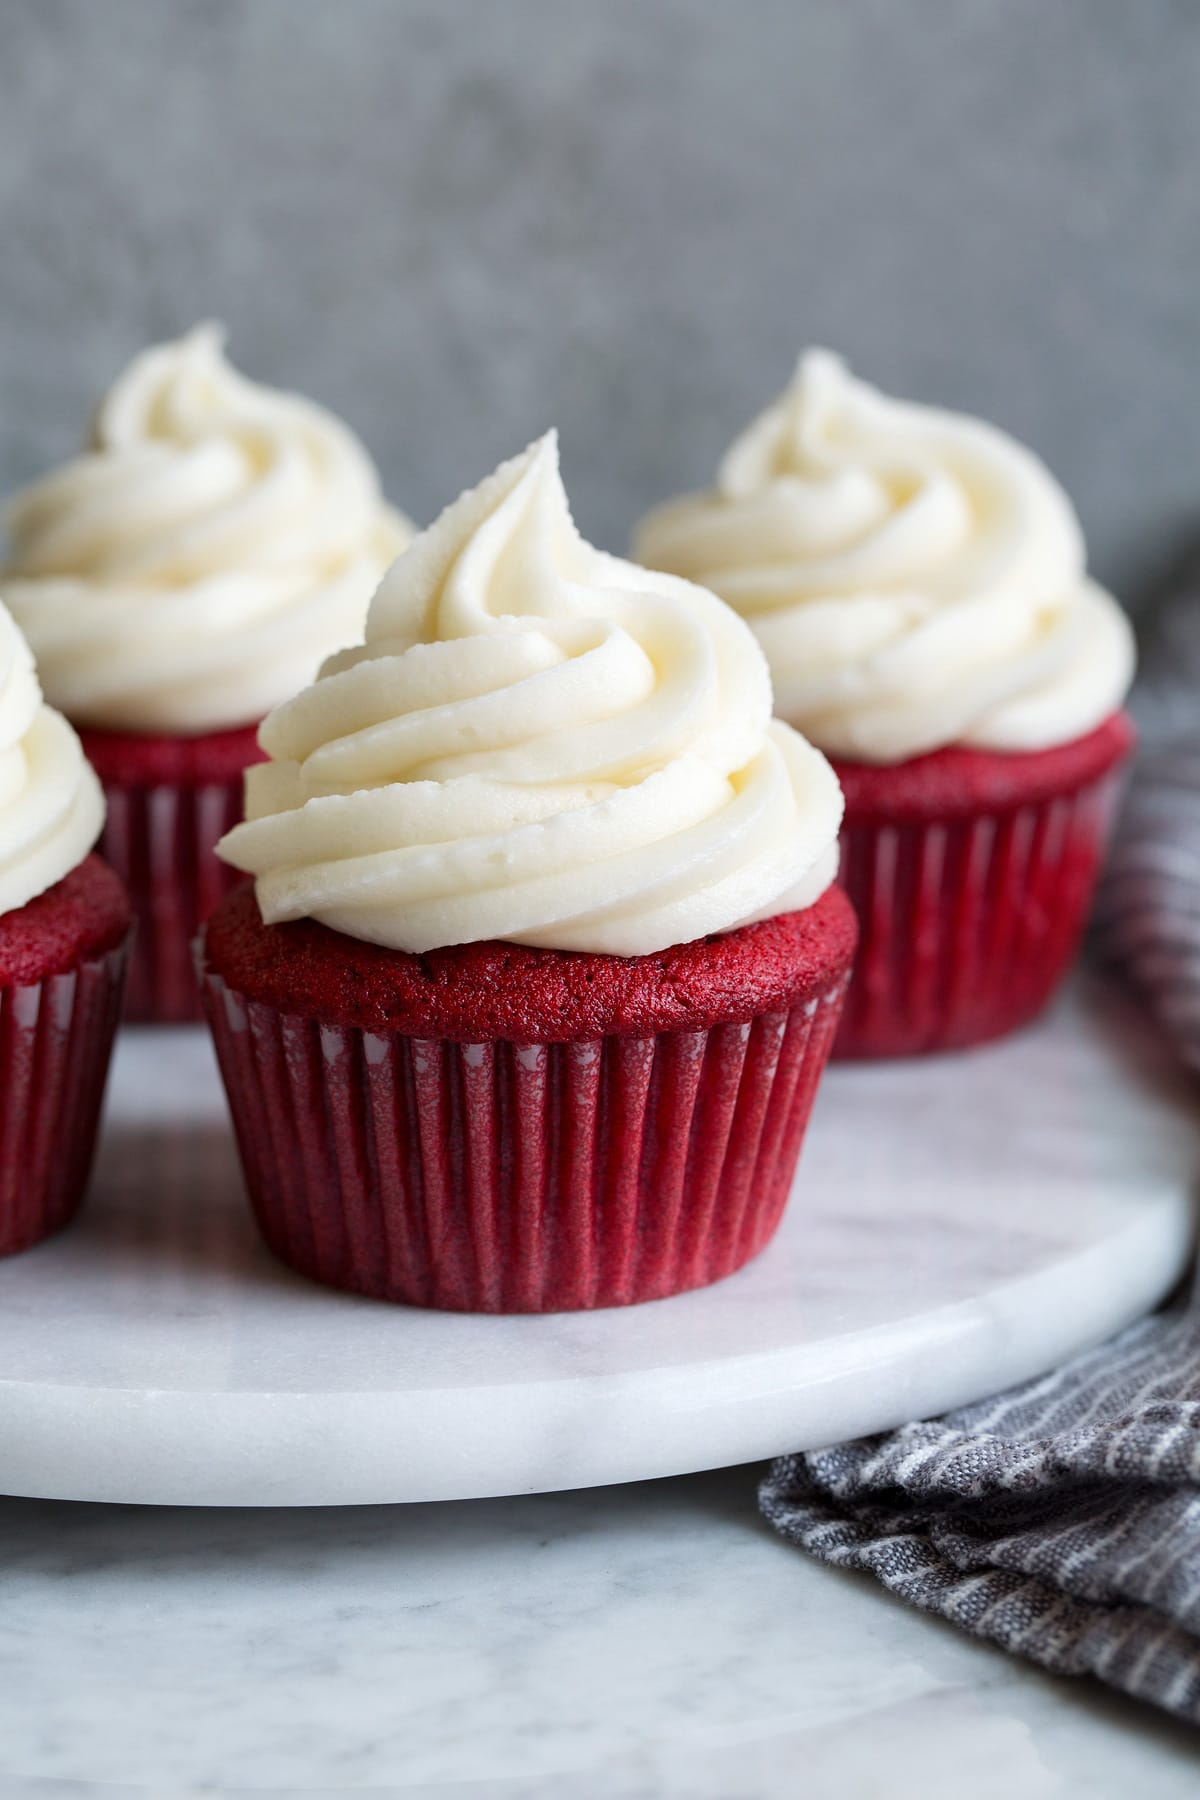 Cream cheese frosting shown atop four red velvet cupcakes on a marble platter.